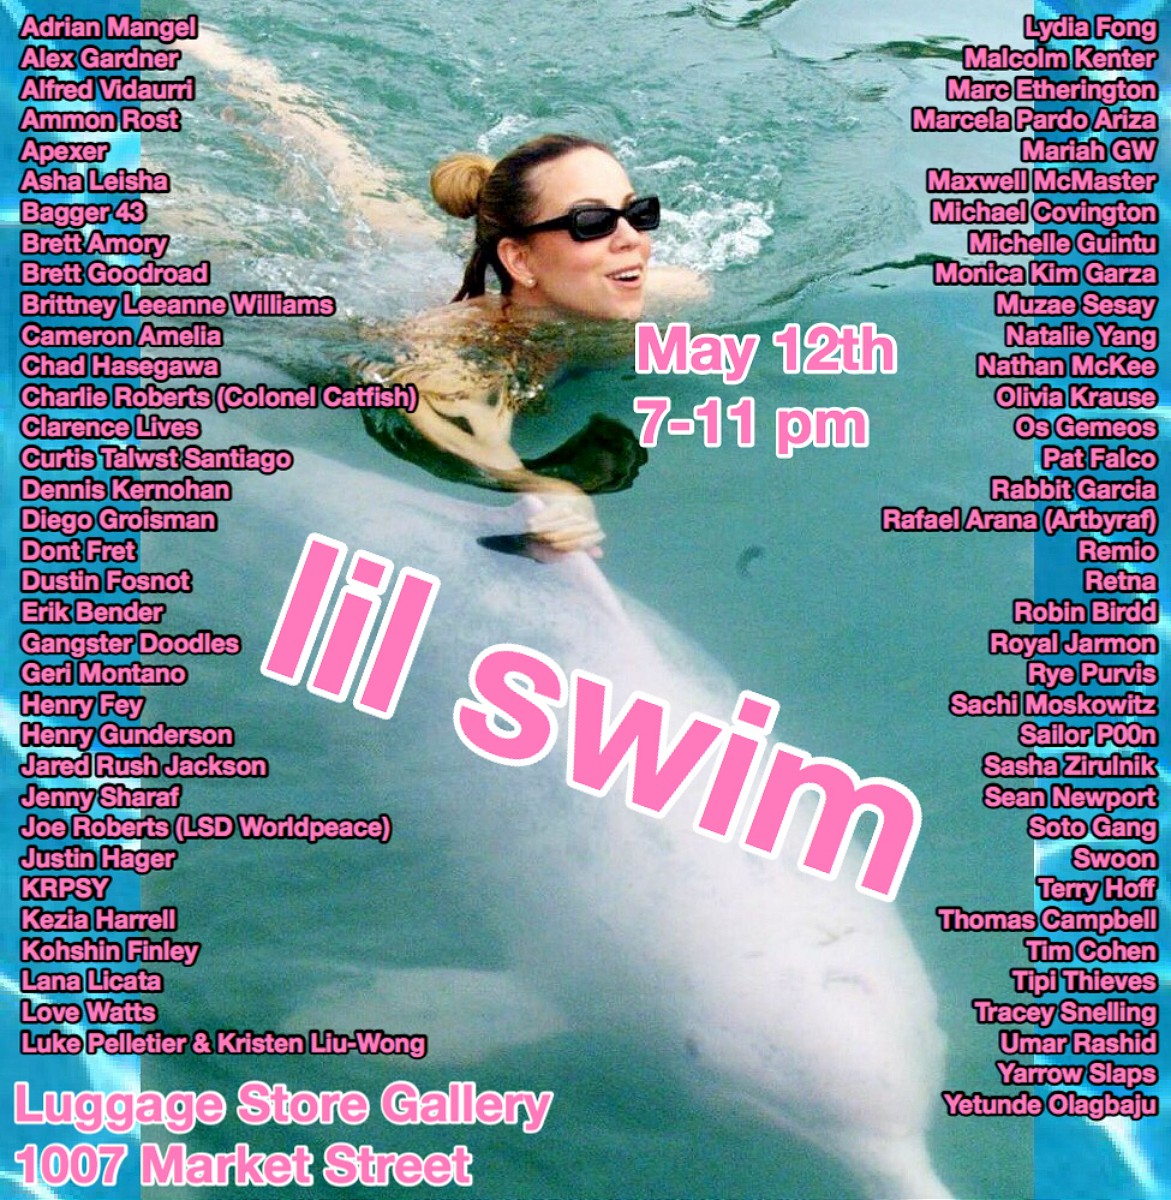 """Previews: """"Lil SWIM"""" group show @ The Luggage Store"""